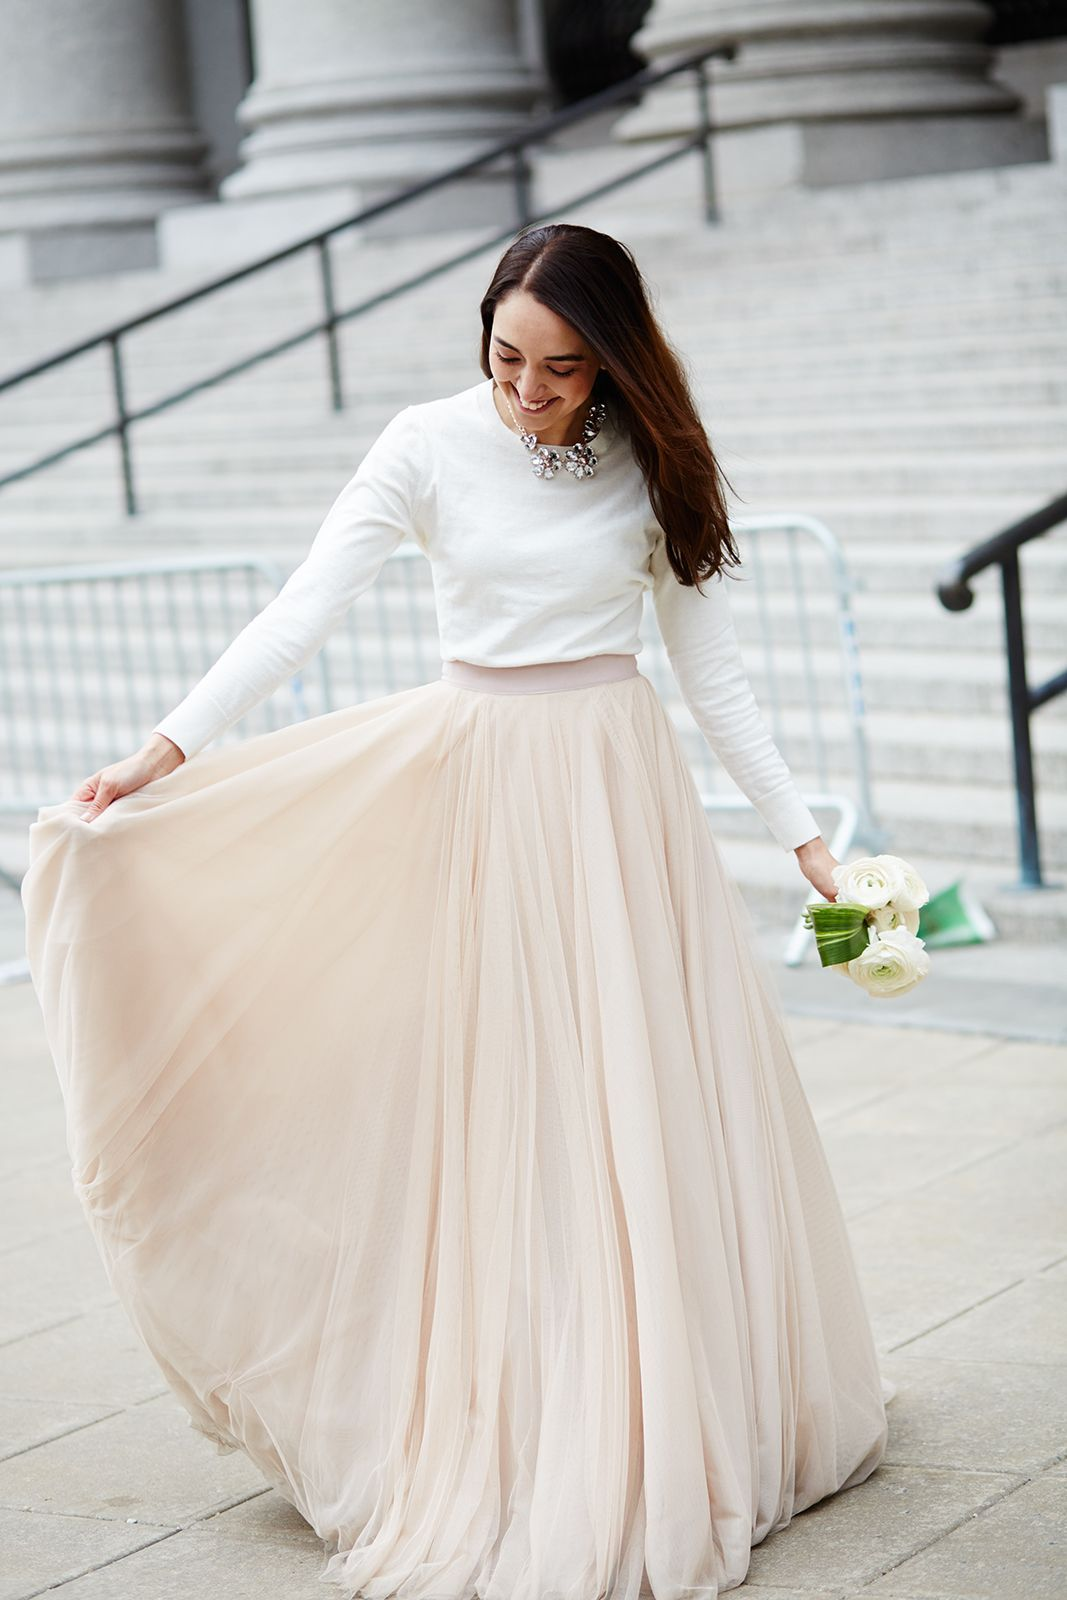 Long sleeve casual wedding dress  These Gorgeous City Hall Weddings Are Goals  City hall weddings